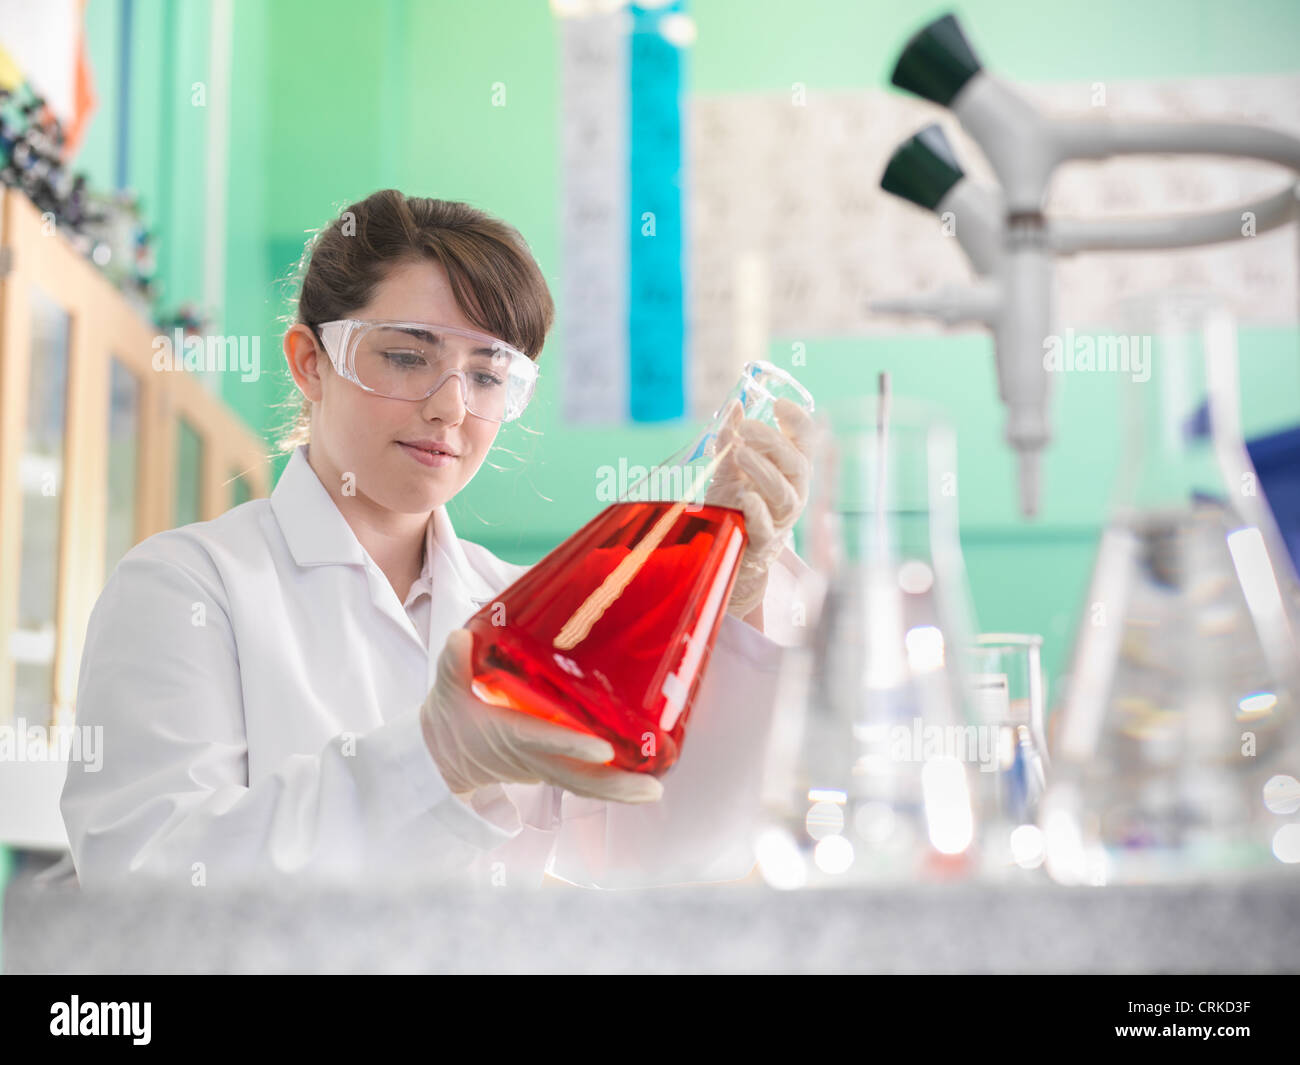 Chemistry student working in lab - Stock Image